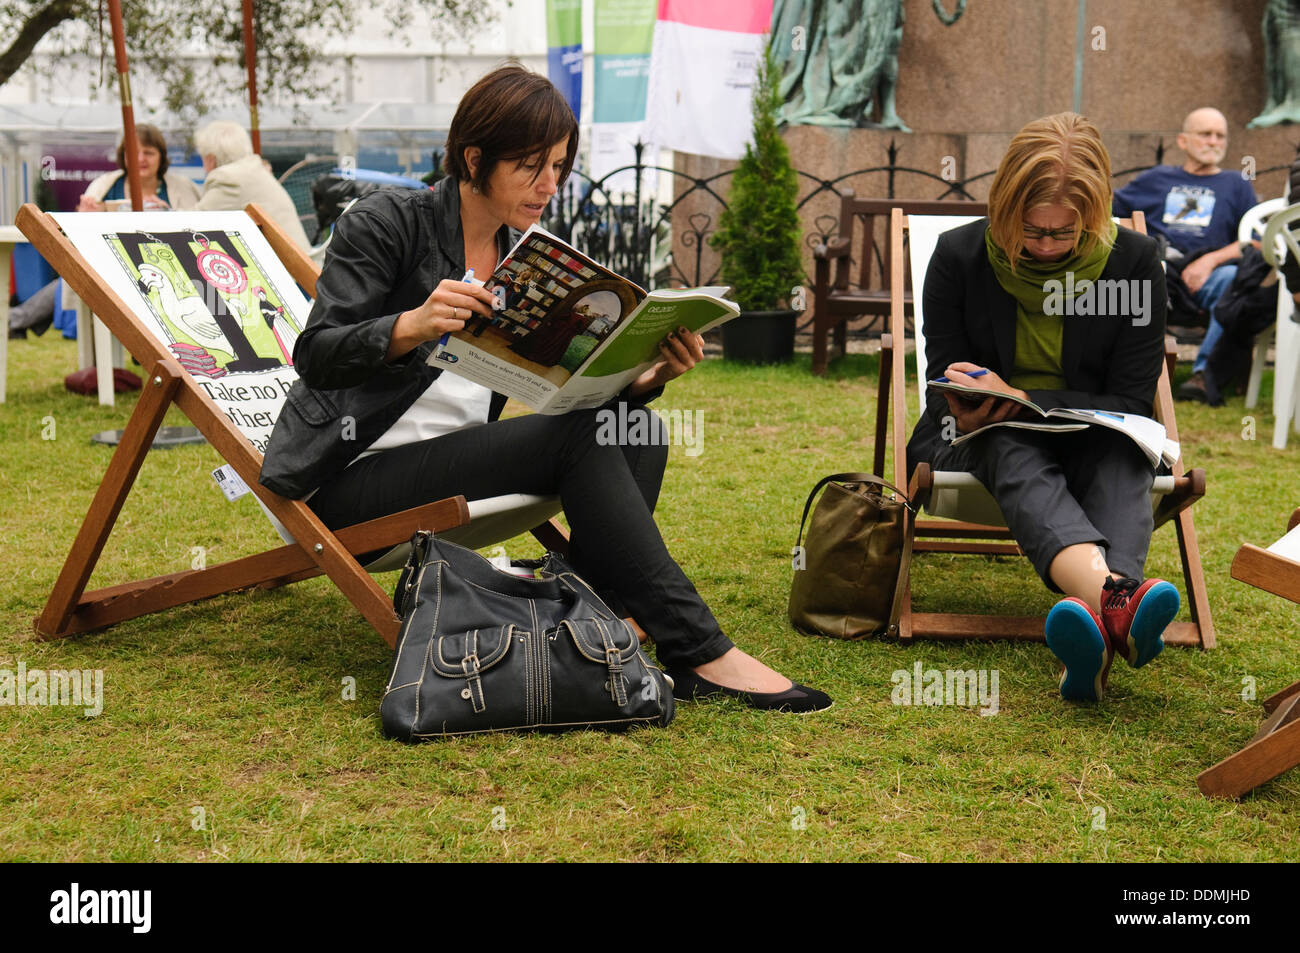 Visitors to the Edinburgh International Book Festival. - Stock Image